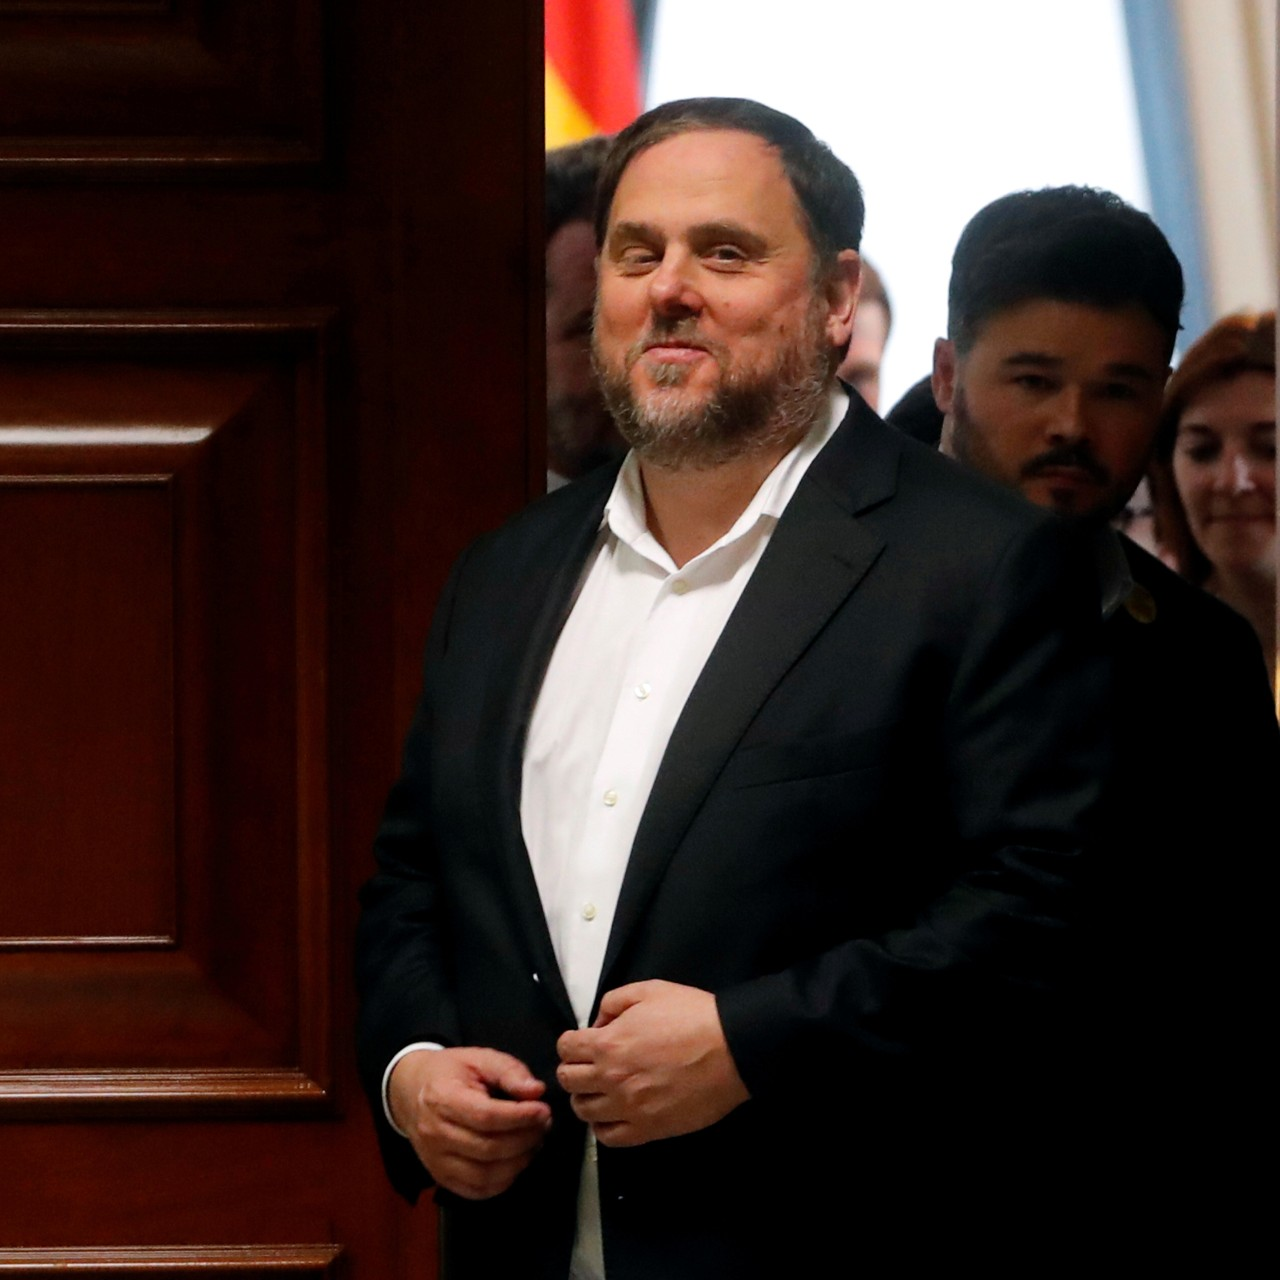 Spanish court stops jailed Catalan separatist Oriol Junqueras from